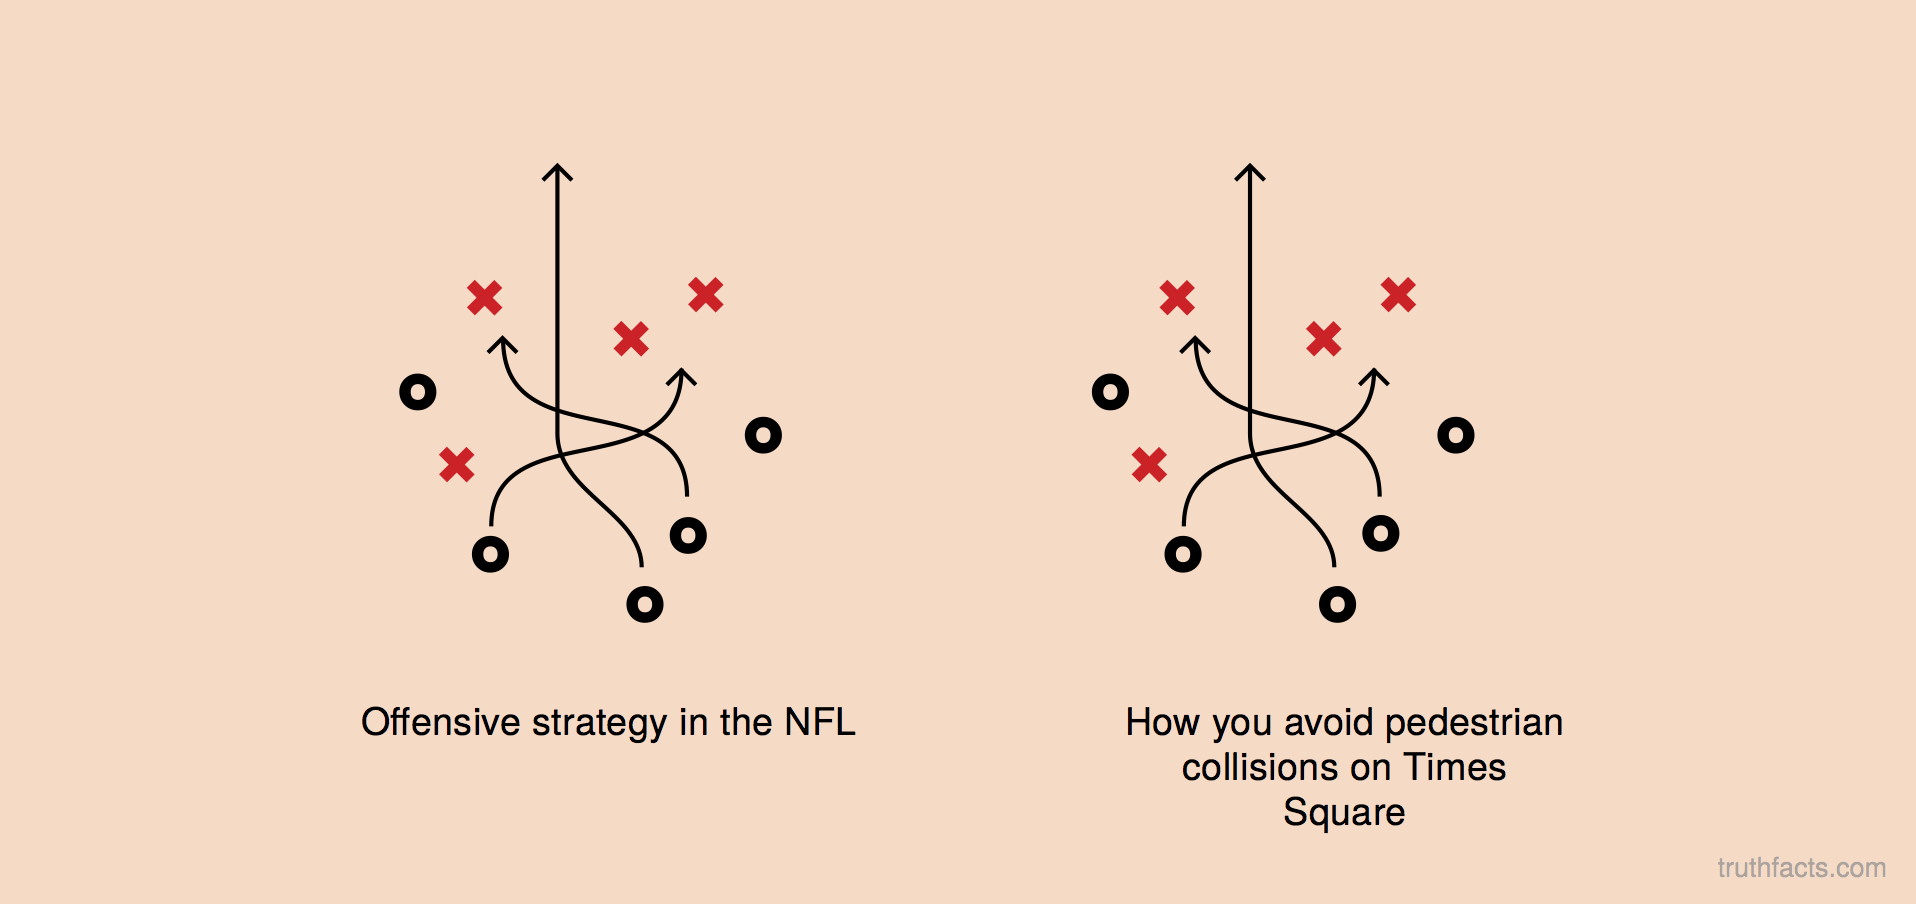 Offensive strategy in the NFL